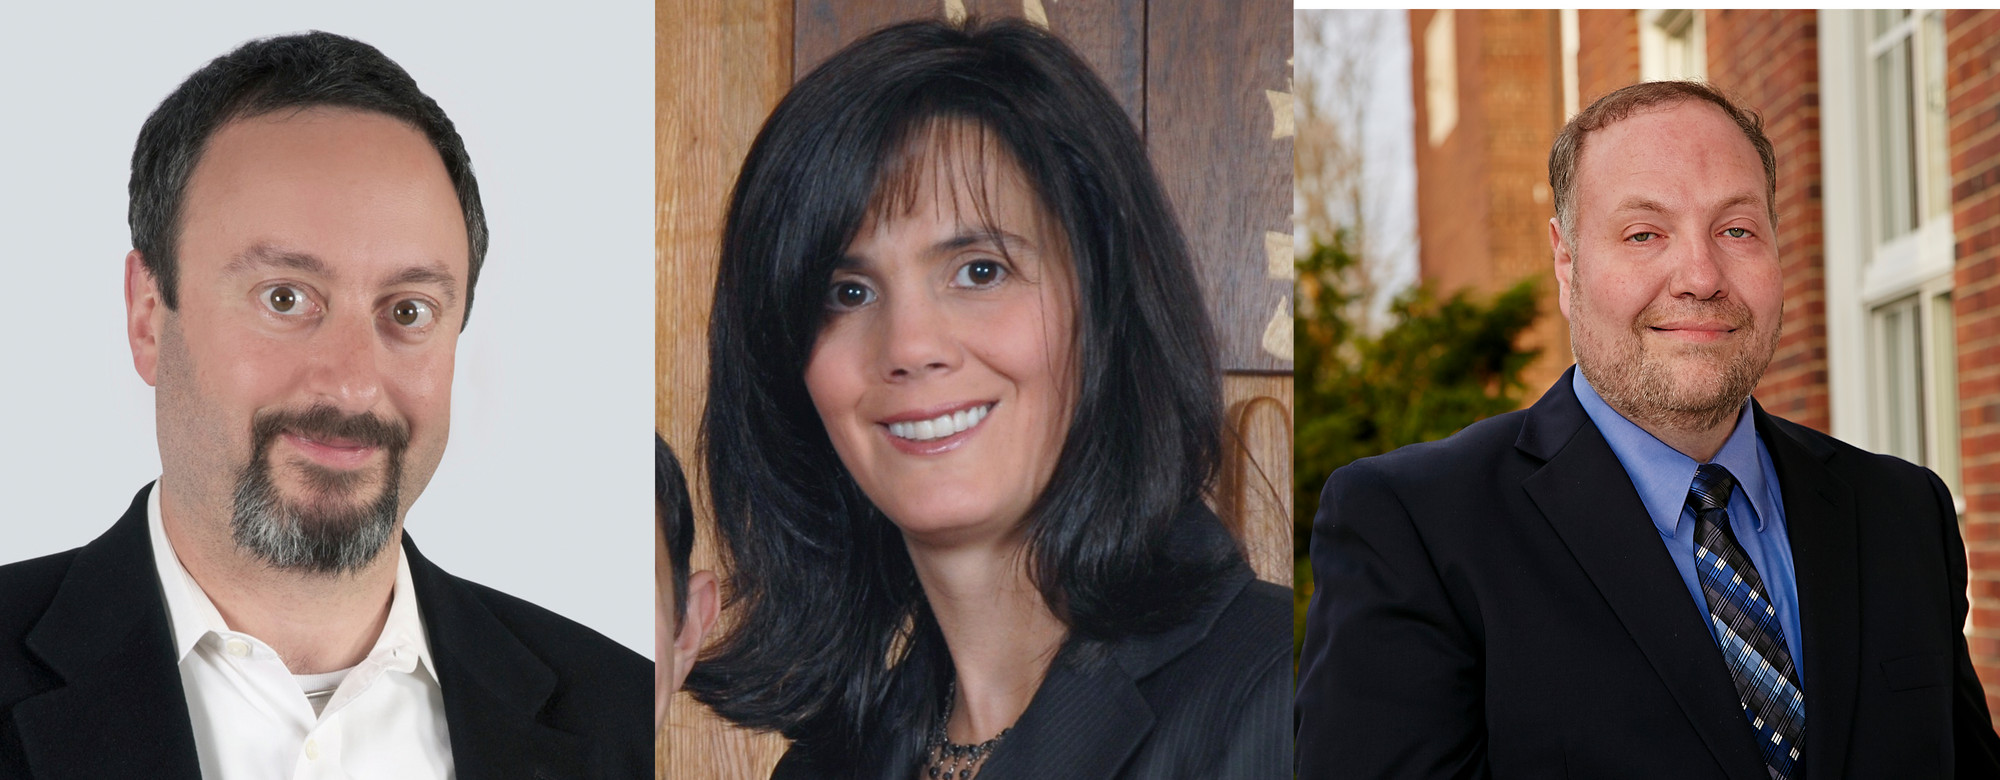 The Lawrence School District has six candidates running for the Board of Education. From left are Dov Herman, Tova Plaut and Jesse Lunin-Pack,  who are vying to replace Dr. Solomon Blisko.